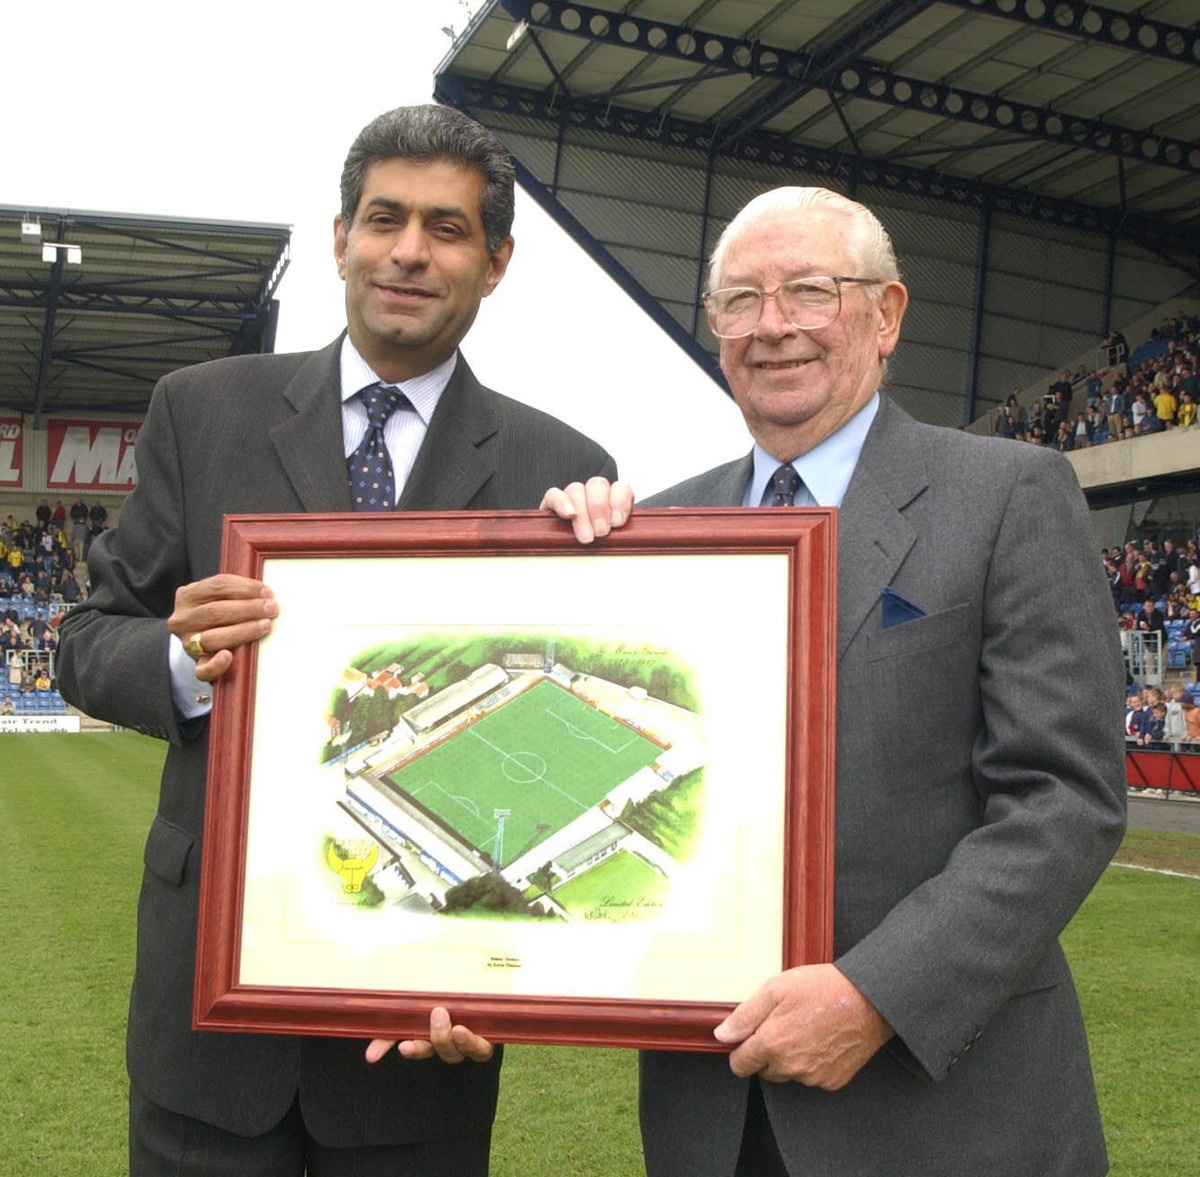 Firoz Kassam (left), Oxford United's chairman in 2002, presents Jack Casley with a painting of the old Manor Ground to mark his services to the club